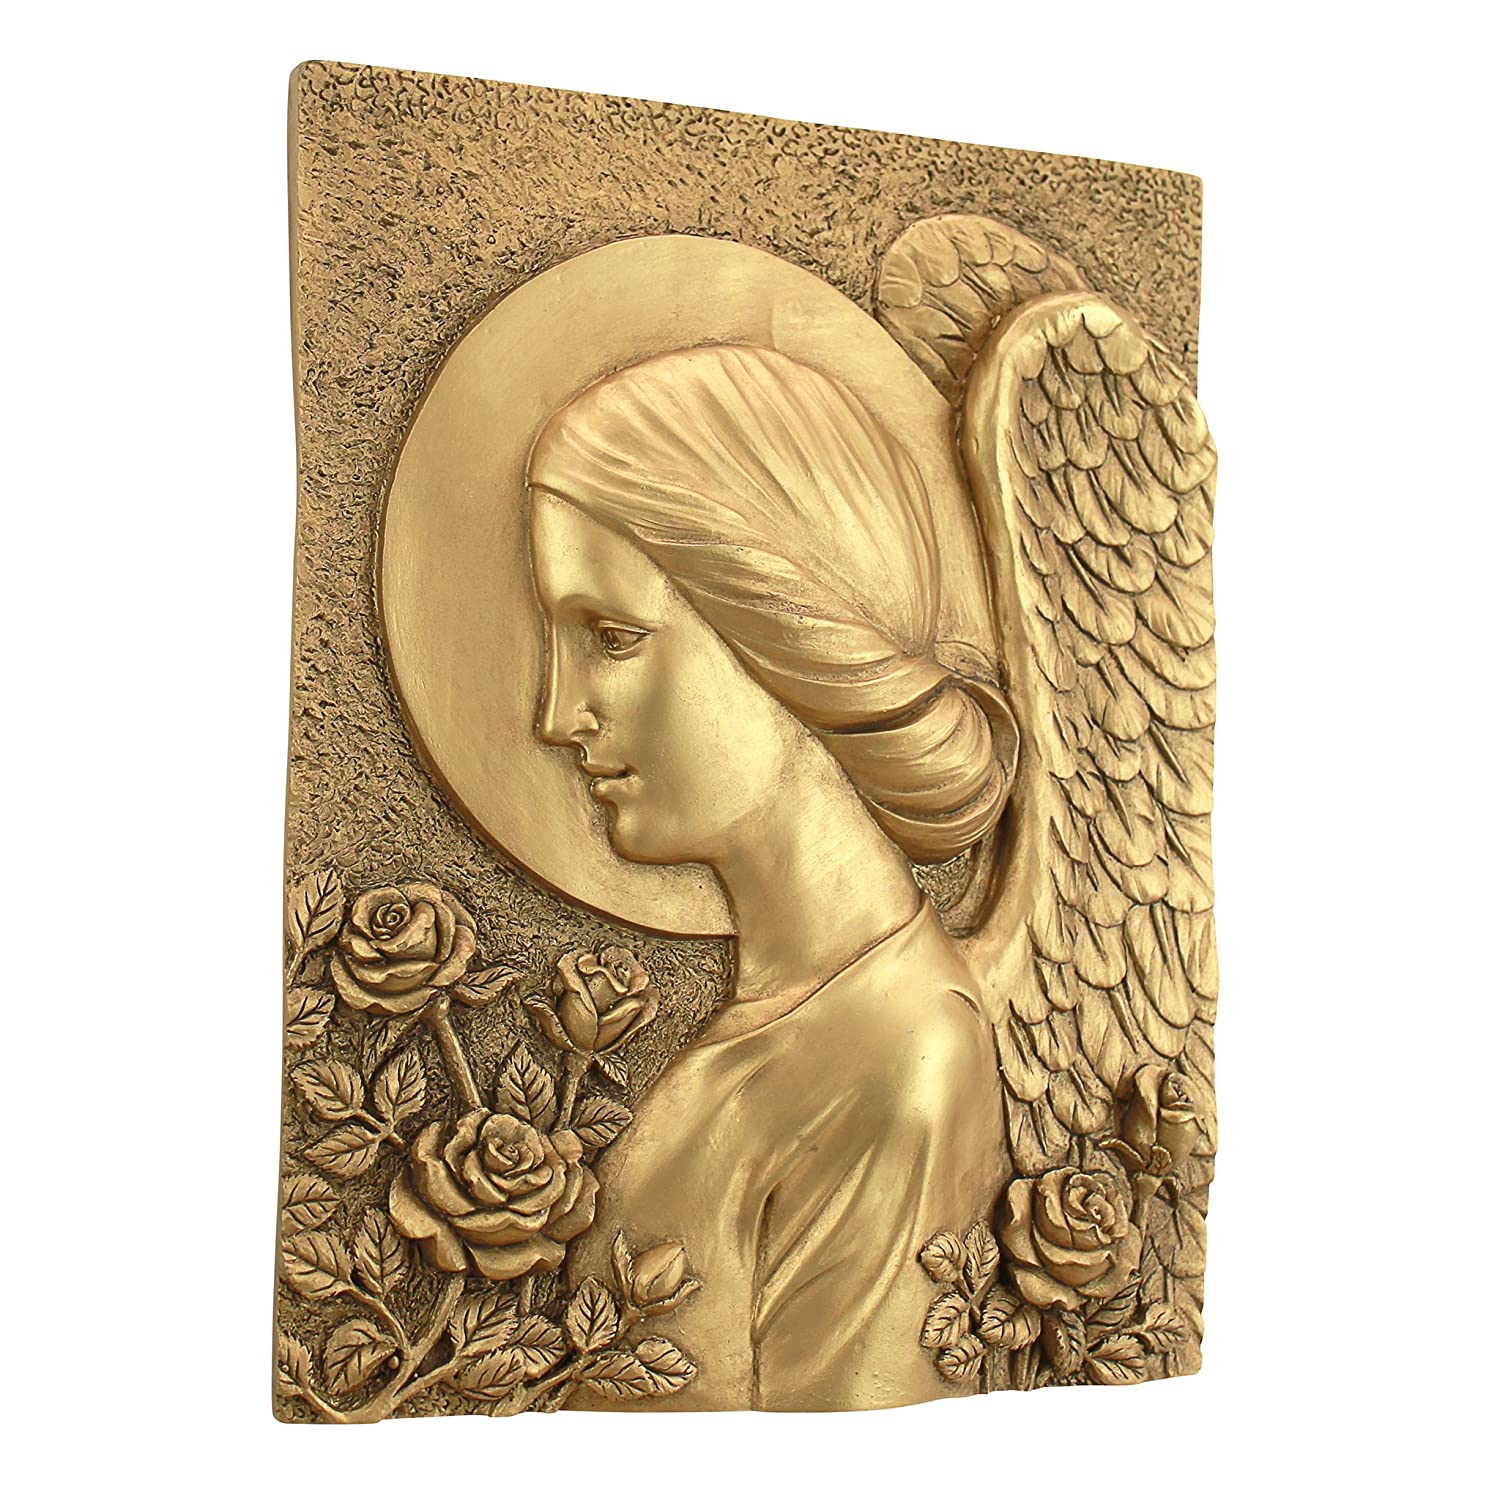 Amazon.com: Design Toscano Brachial the Archangel of Blessings Wall ...